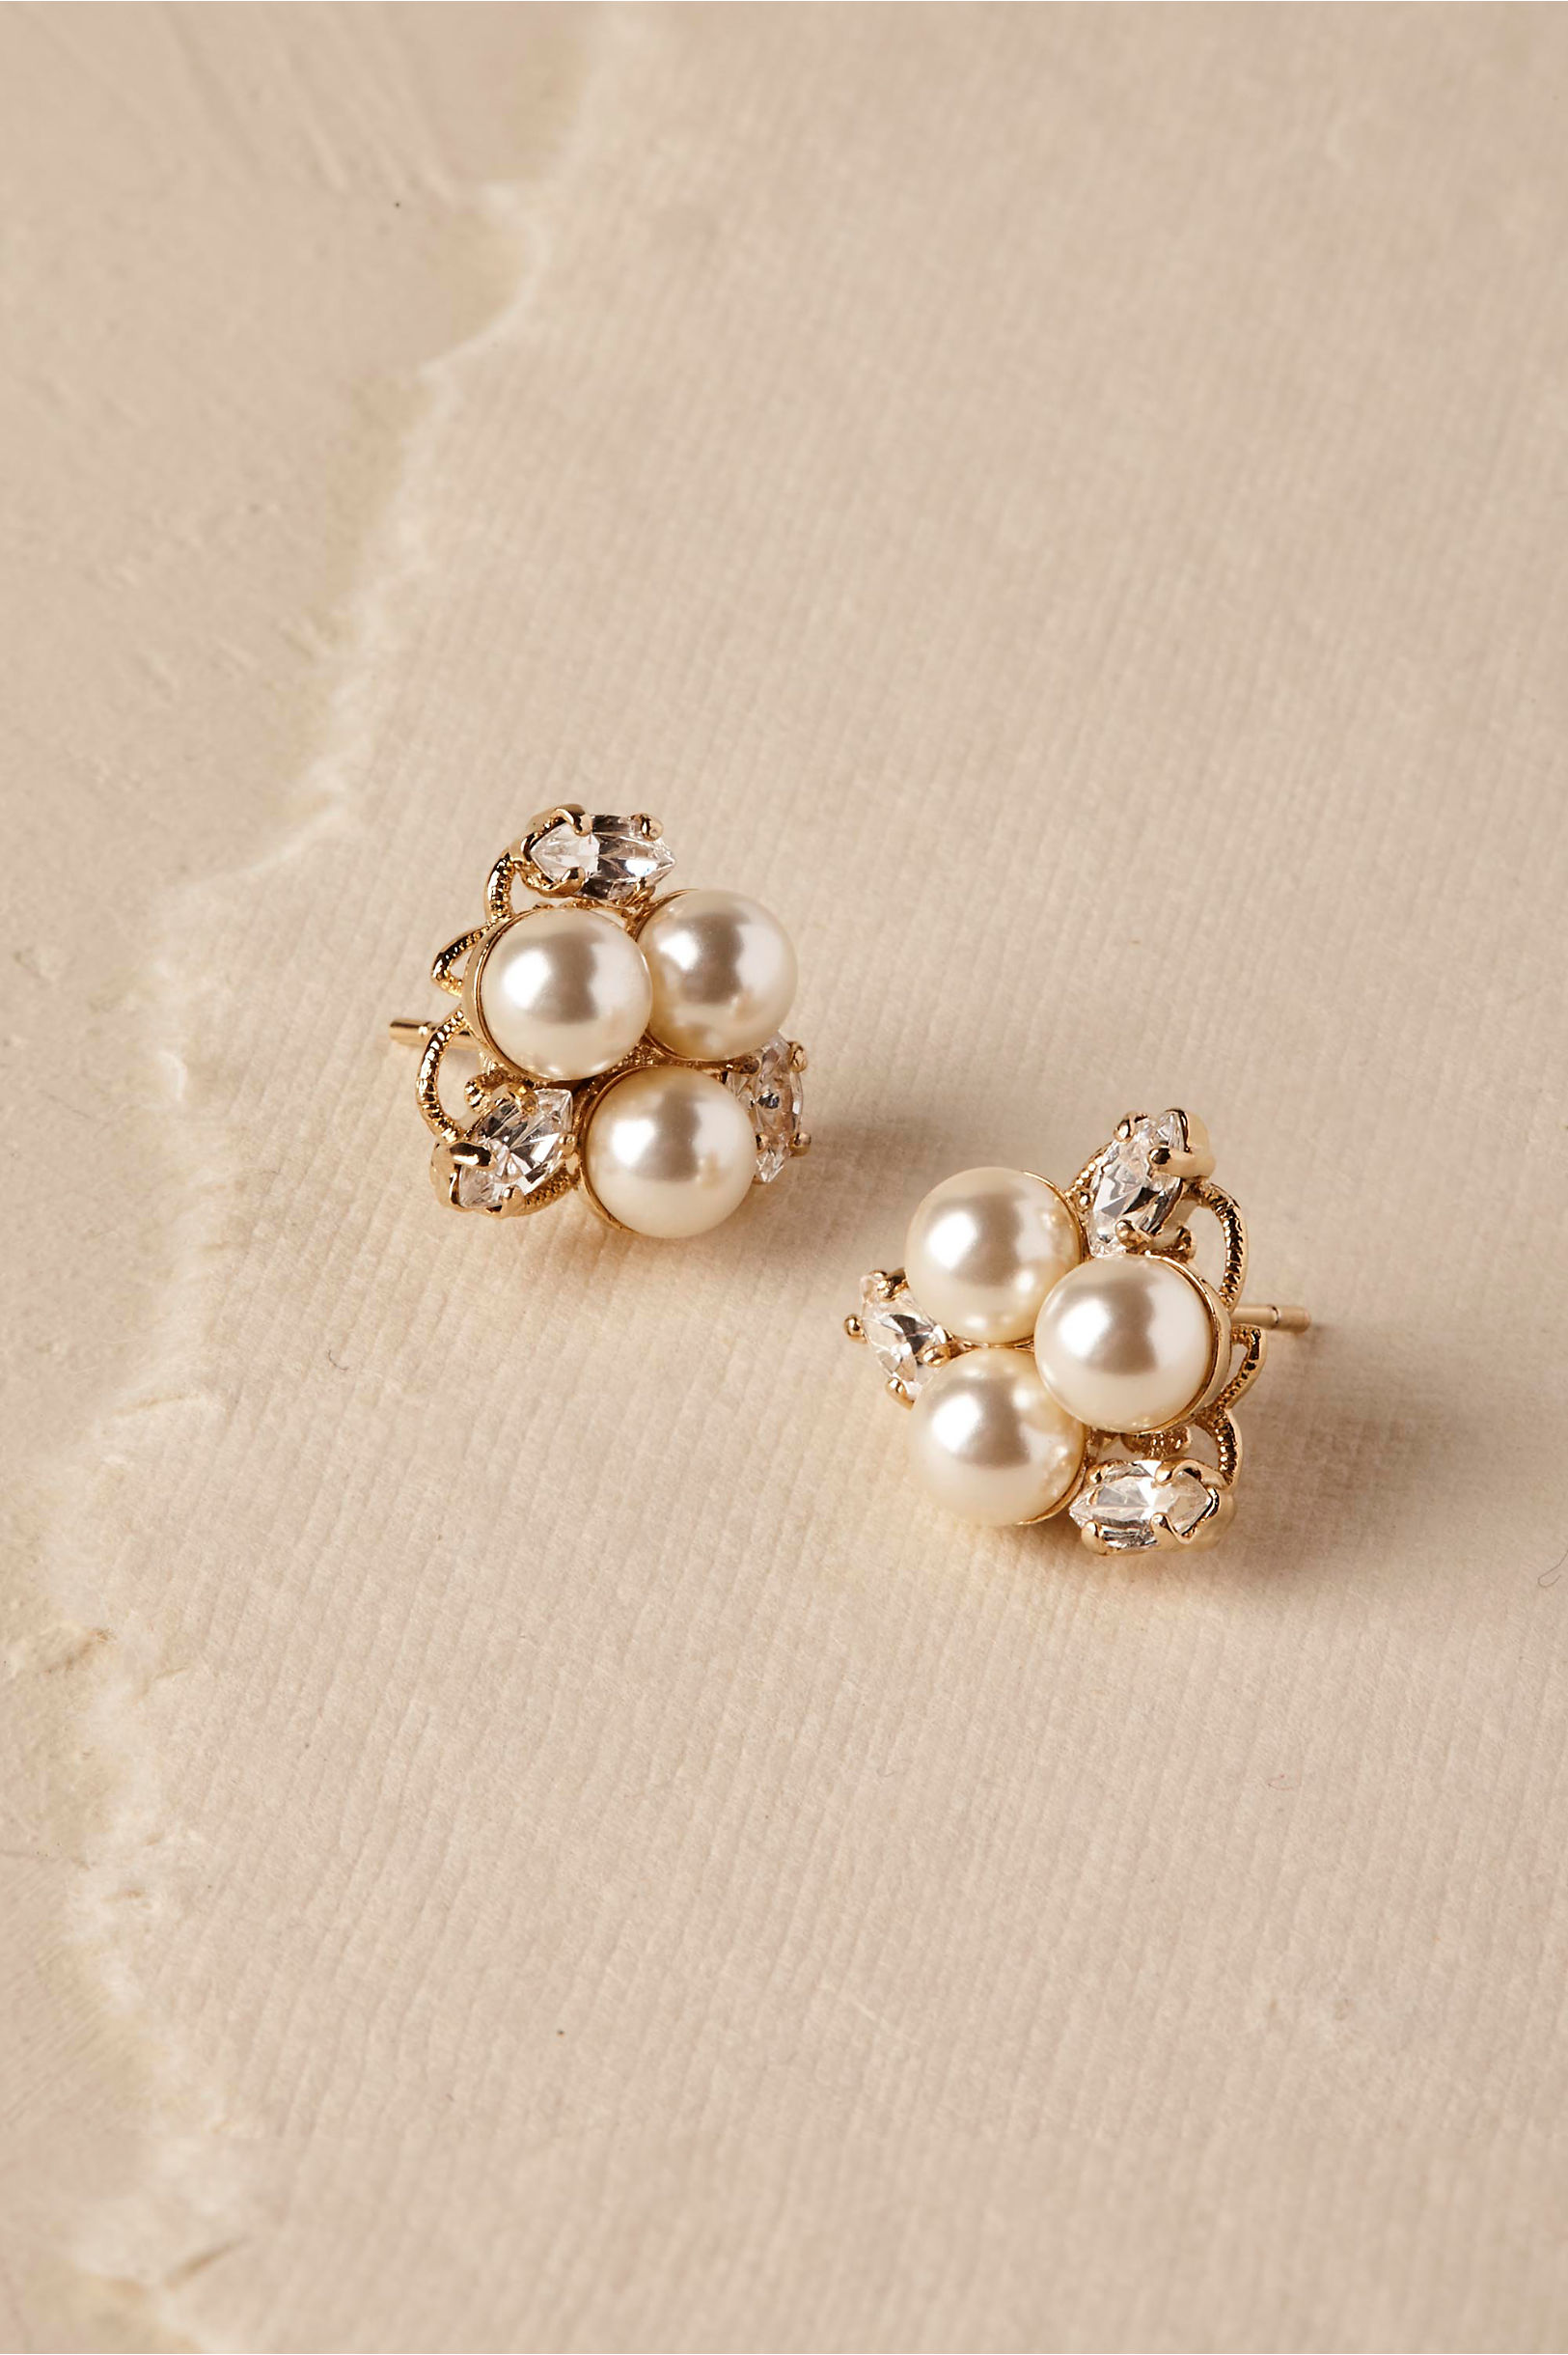 wholesale pearl zenzii double pearls ball earring blooming gdprl earrings